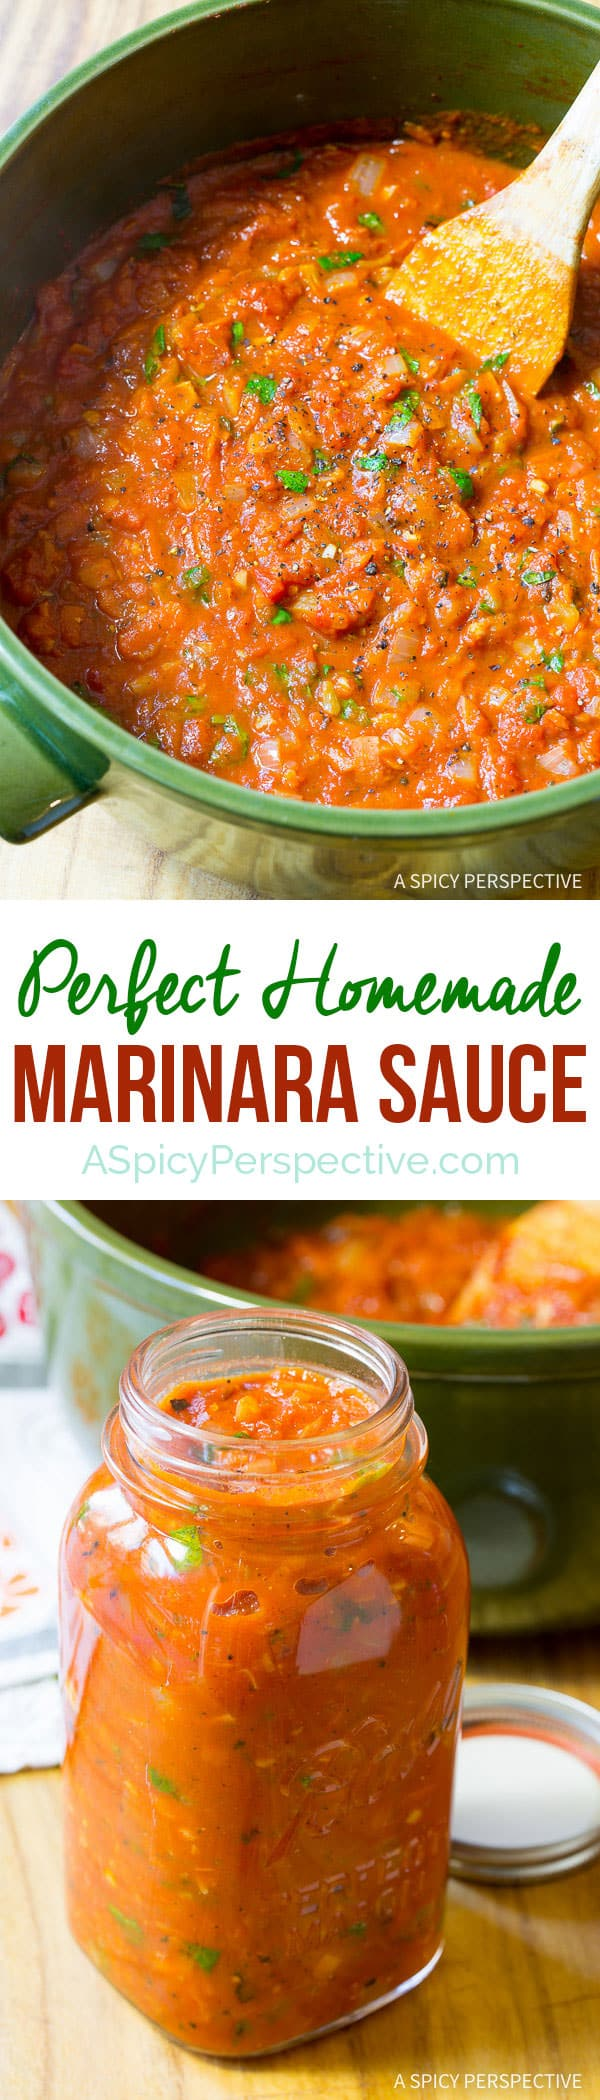 How to Make Marinara Sauce (with Recipe) | ASpicyPerspective.com